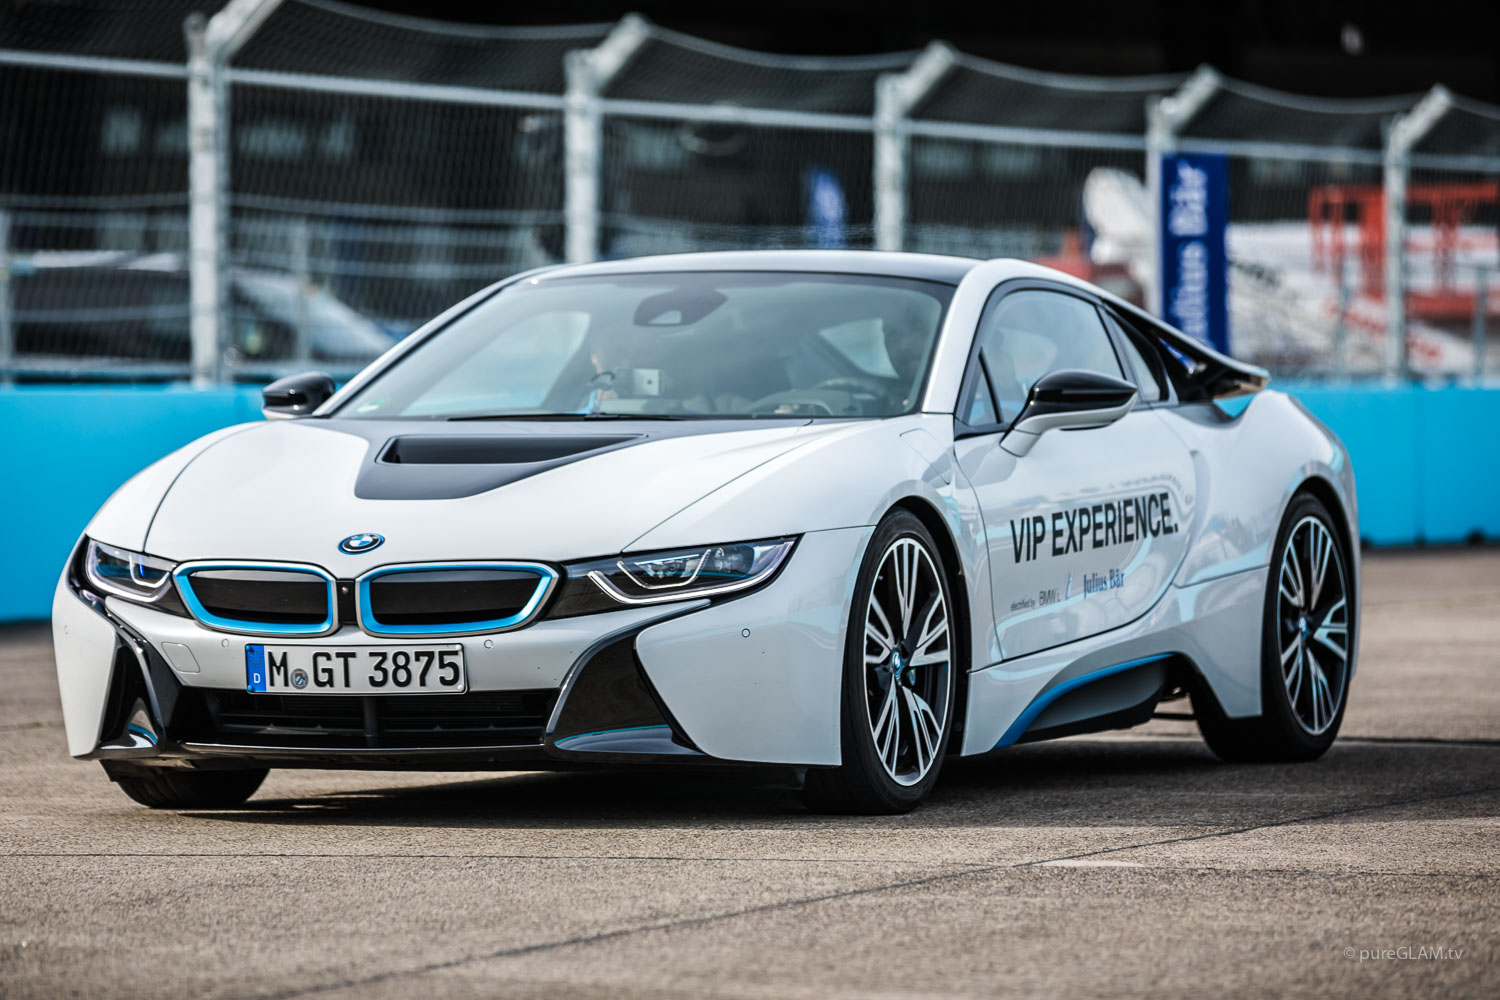 HarmanKardon GetElectrified Formula E Grand Prix Berlin - BMW Motorsport Event und Driving Experience mit BMW i8 ECar - Besuch bei MS Amlin Andretti Racing Team - FIA Formula E - Electric Streetracing - Grid Girl - Speed Event